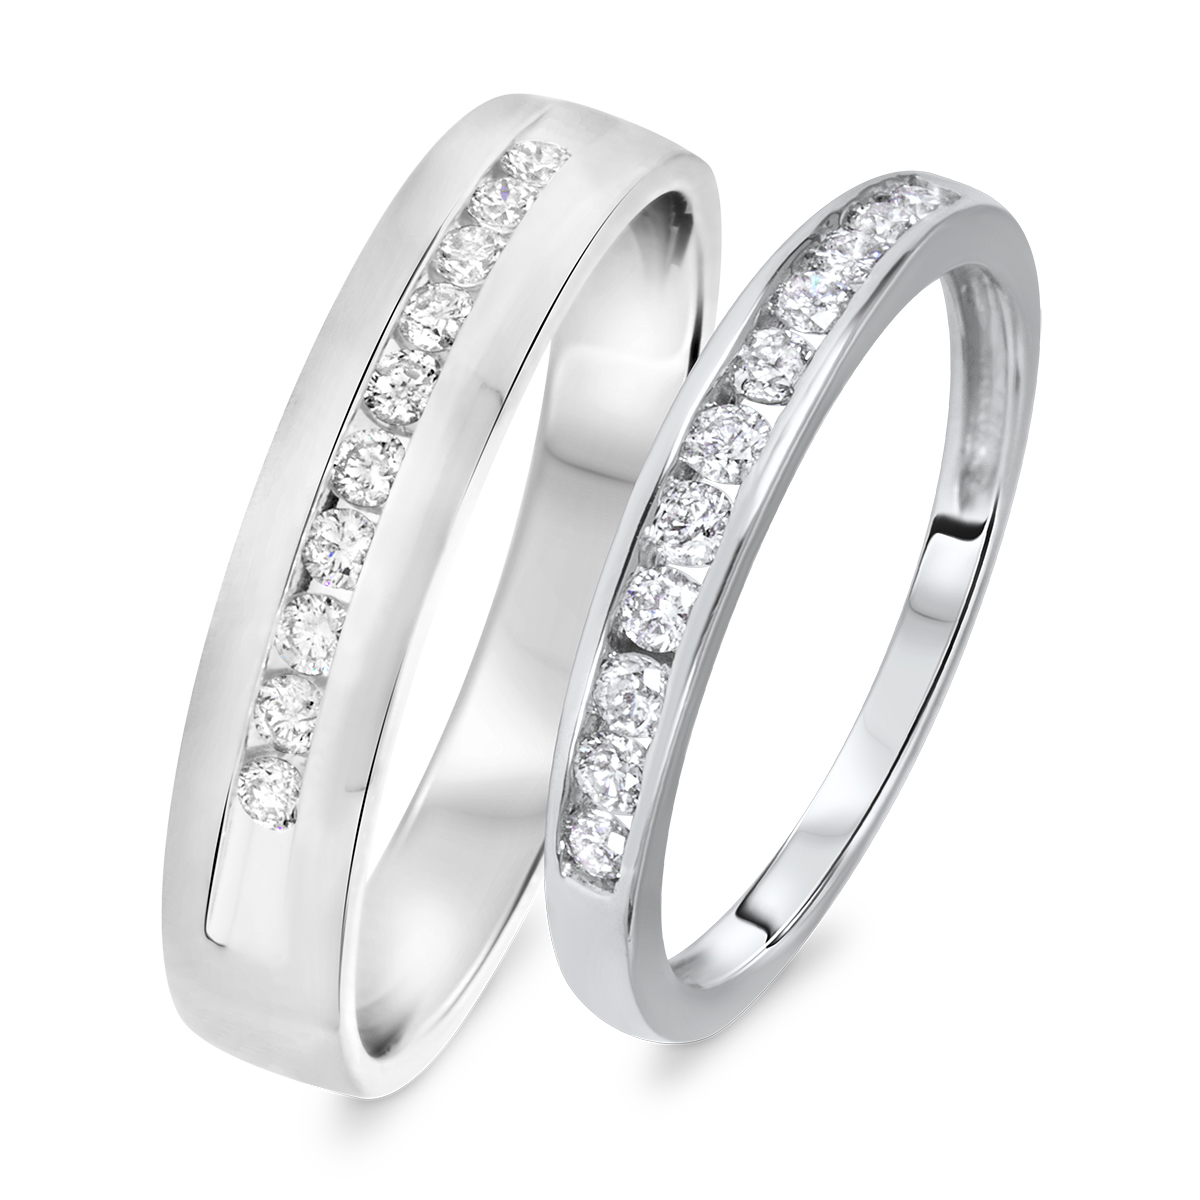 1/2 carat t.w. round cut diamond his and hers wedding band set 14k